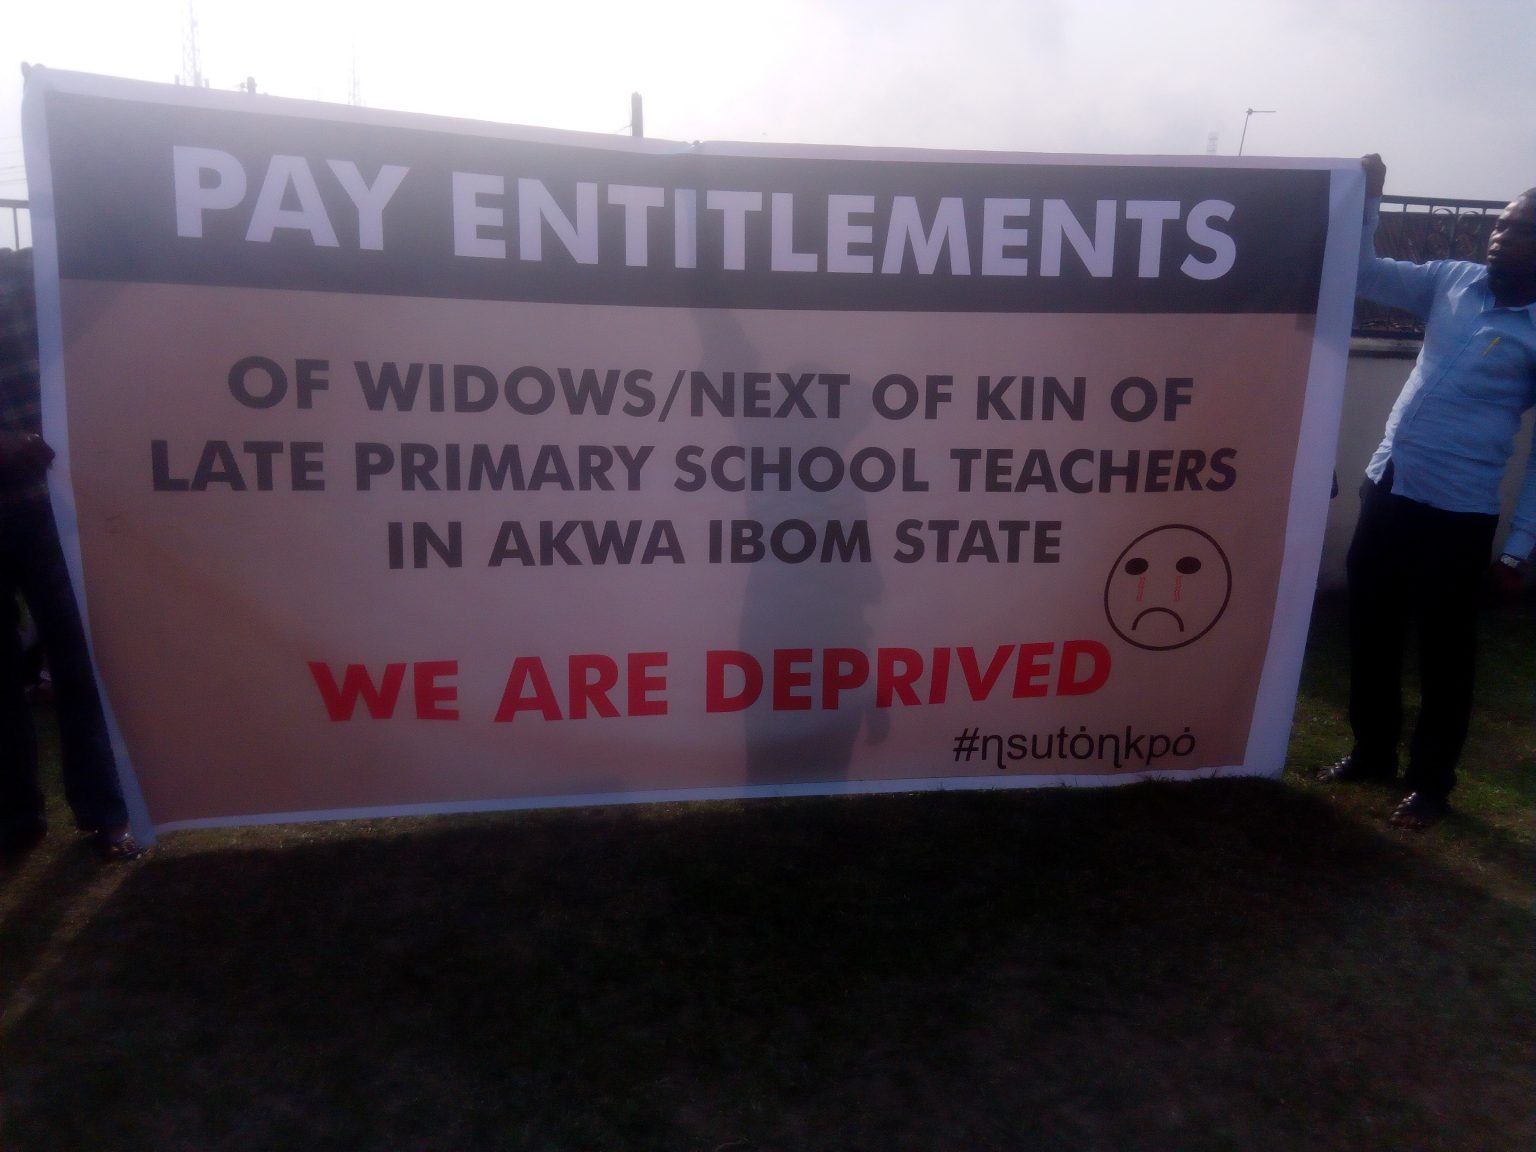 Relatives of dead primary school teachers in Akwa Ibom Protest Unpaid Gratuities, Entitlements